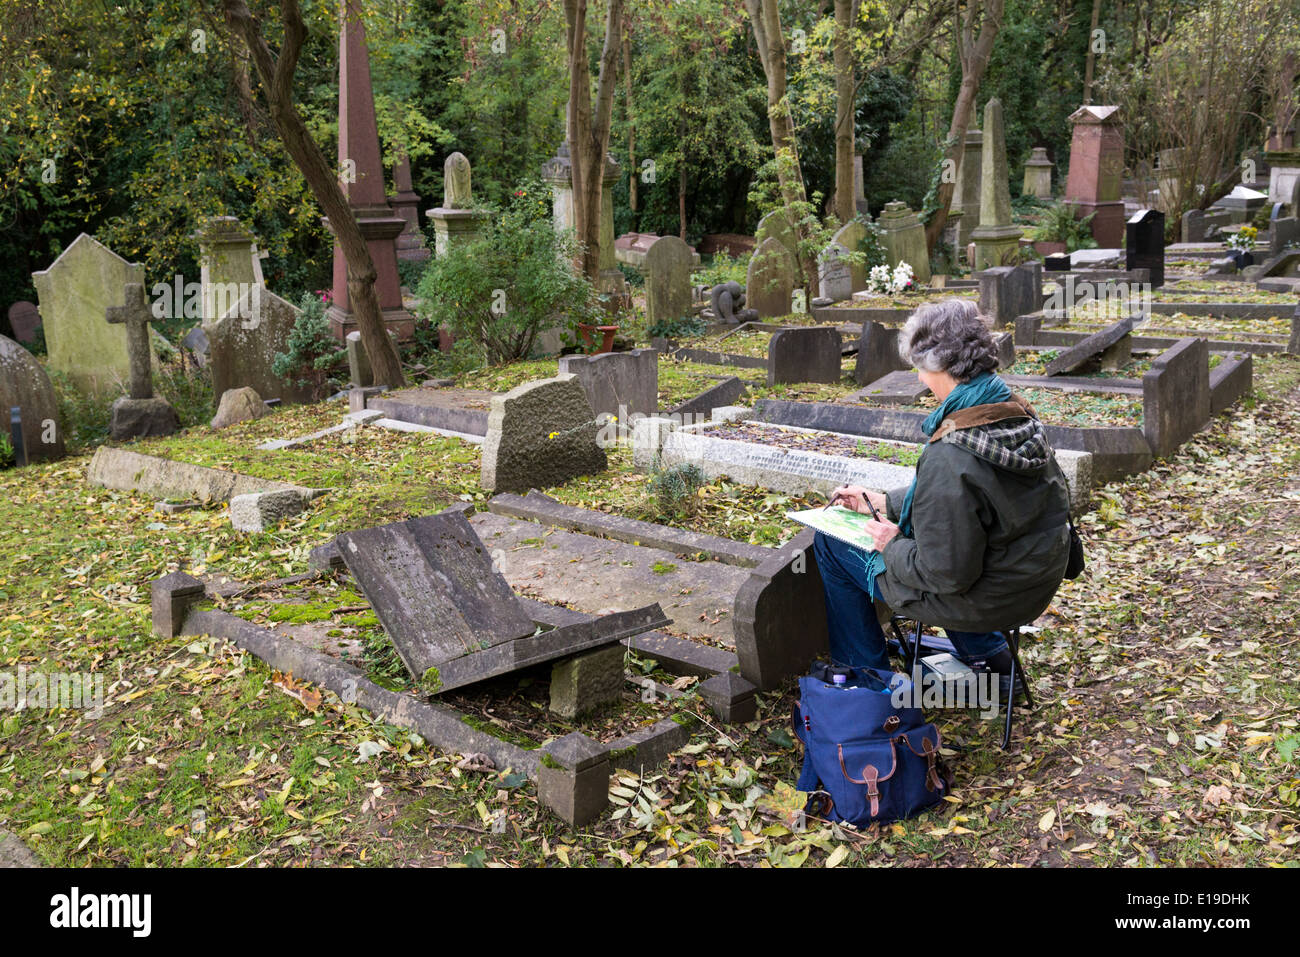 Artist painting in Highgate Cemetery, London, England, UK Stock Photo